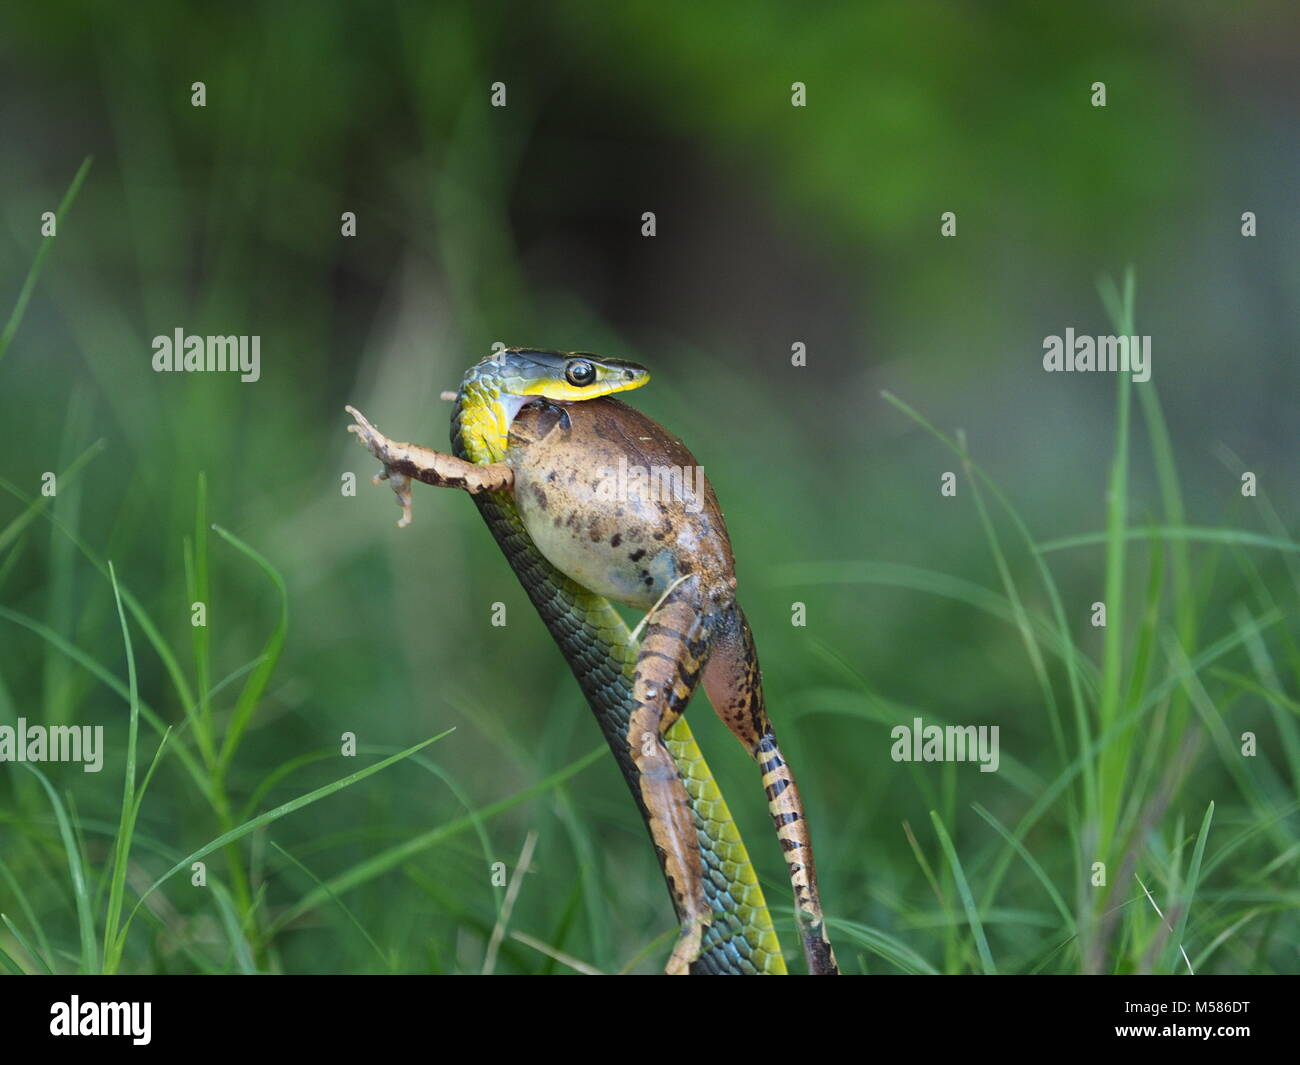 Tree snake eating frog Photo Stock